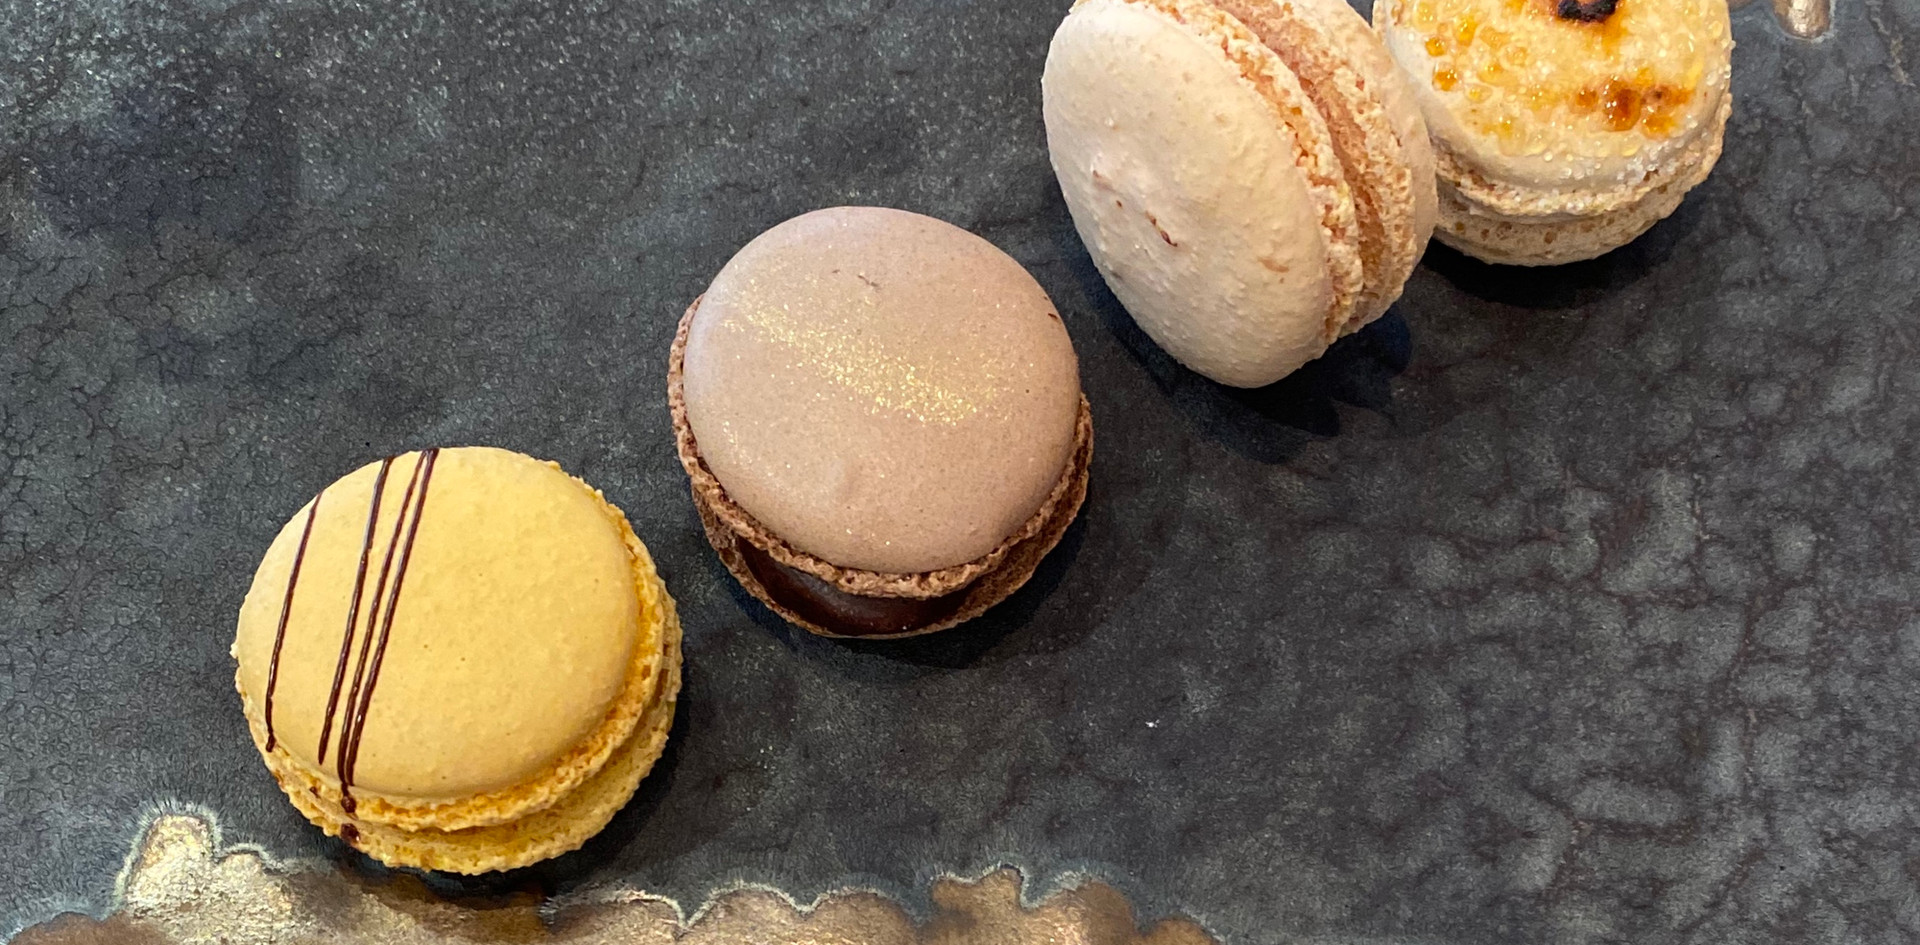 selbstgemachte Maccarons Lunch & Sweet - Hotel Wegner - The culinary Art Hotel